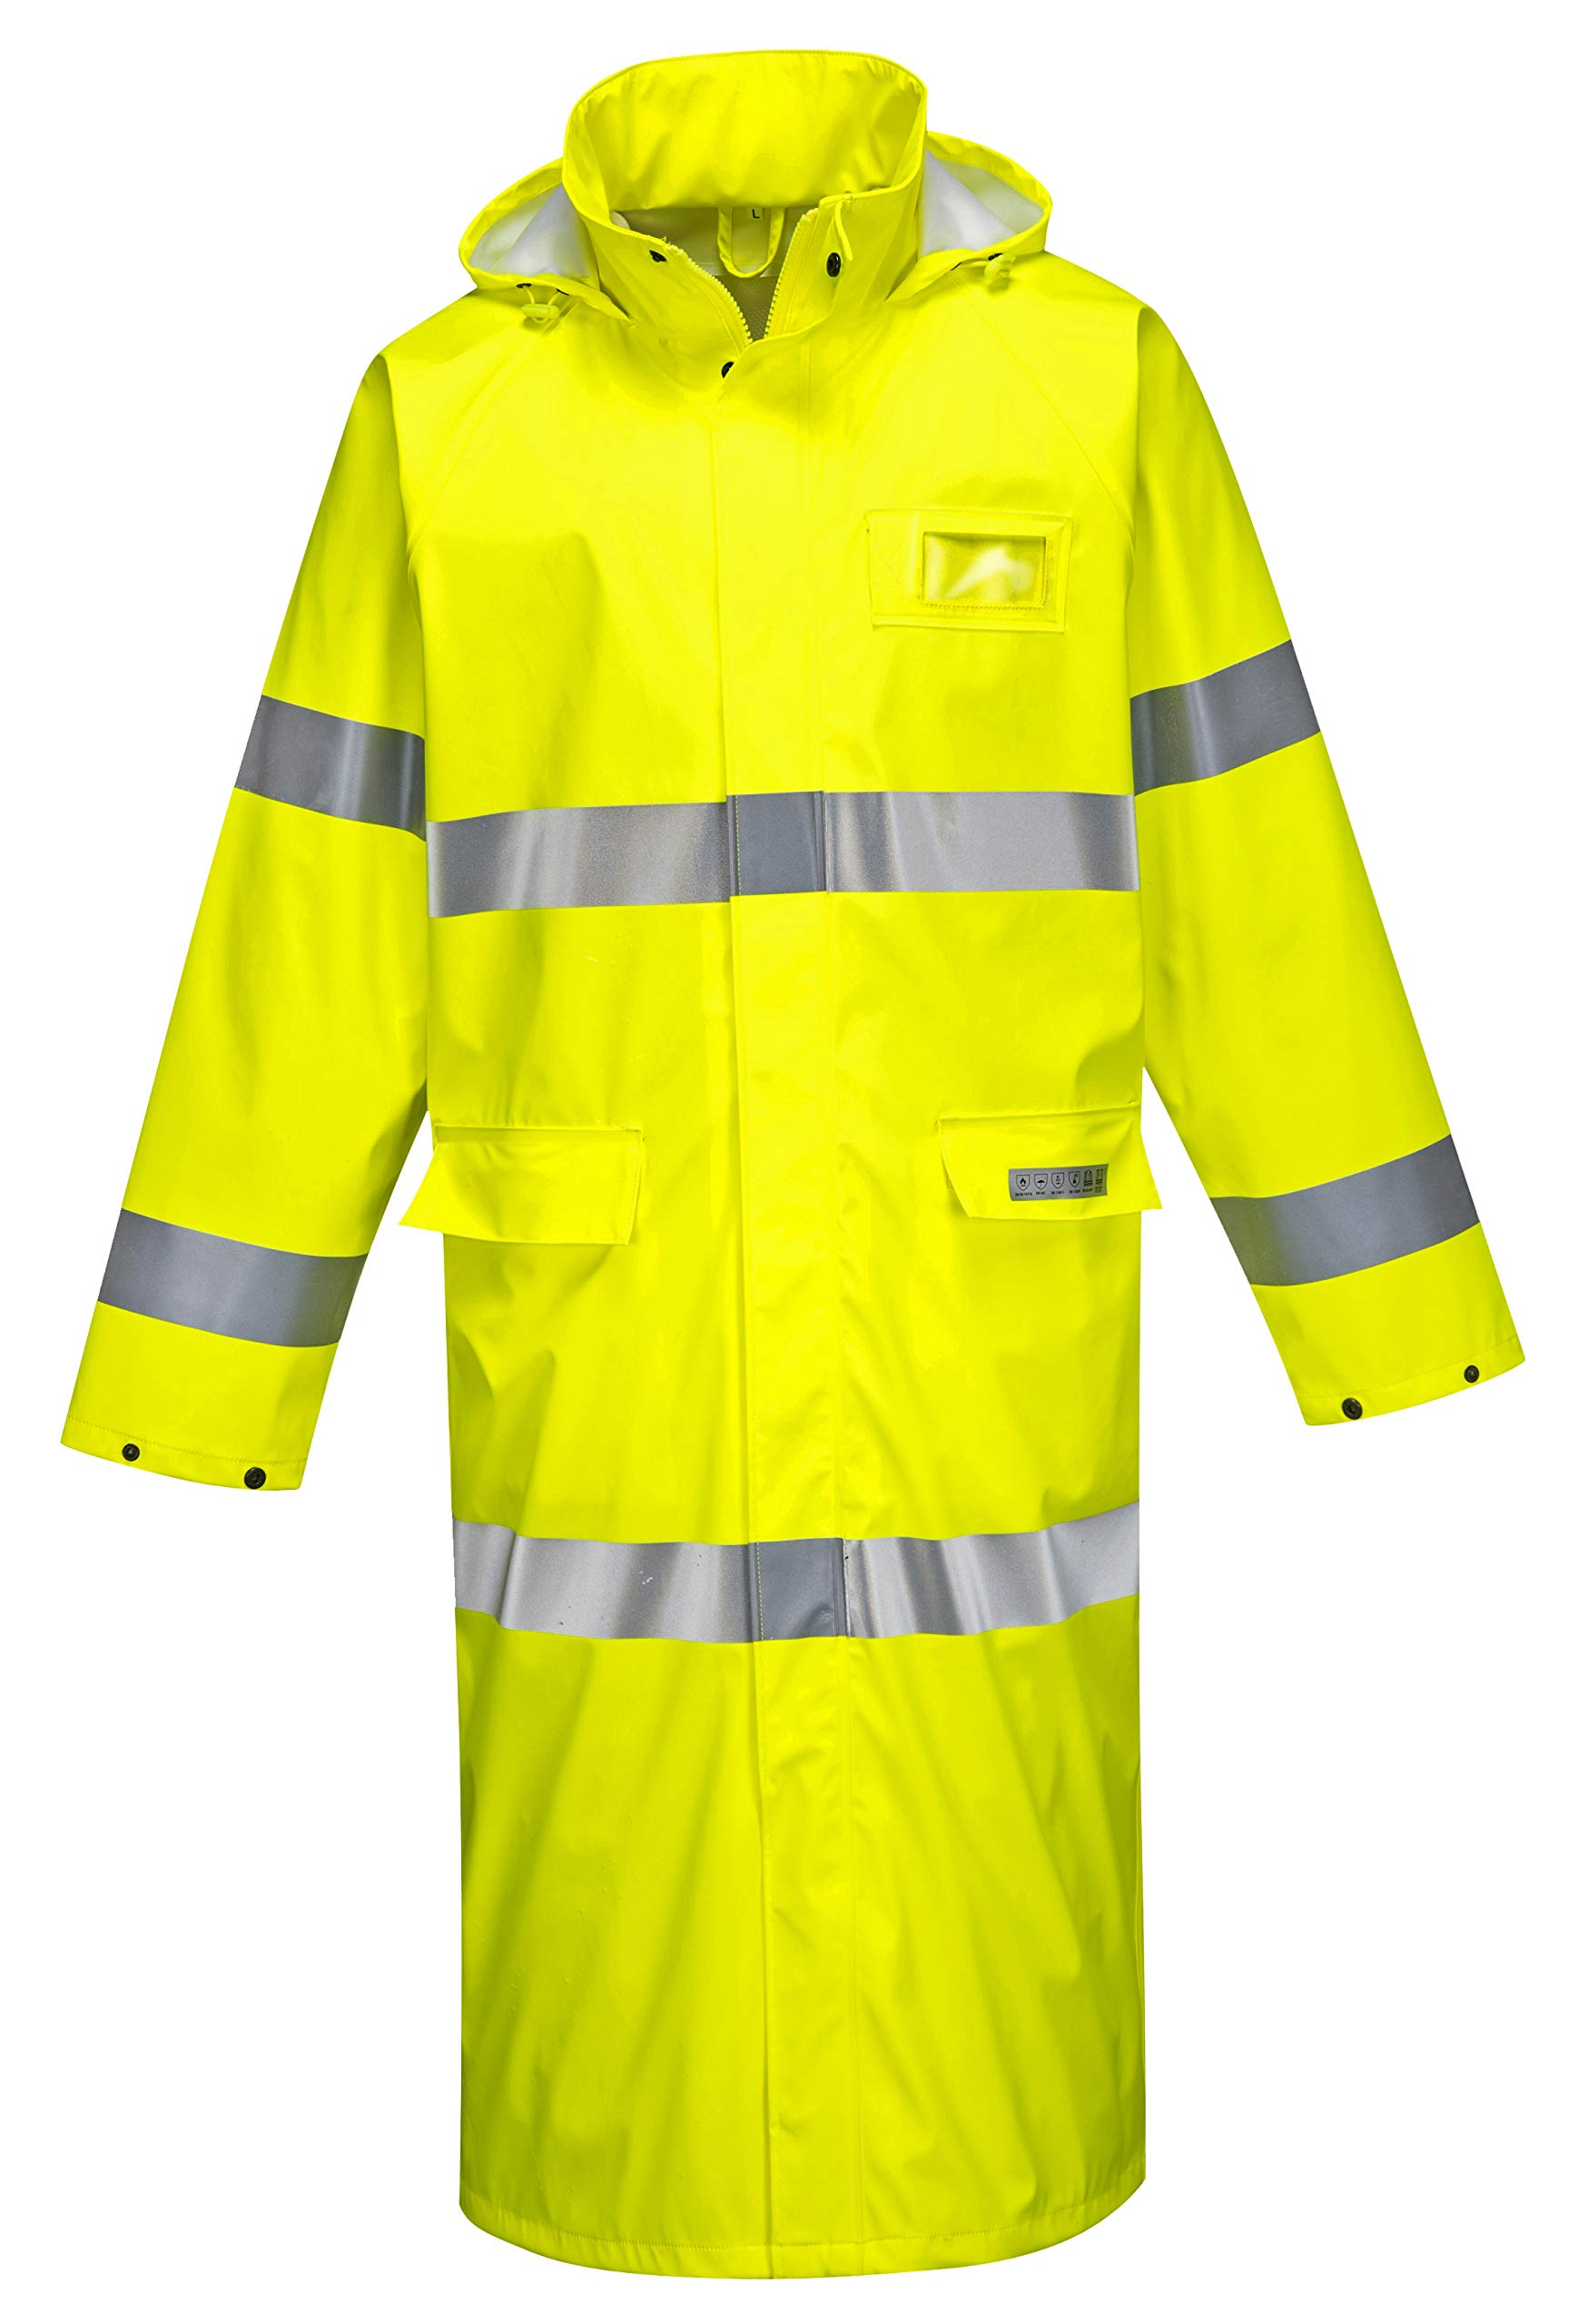 Brite Safety Flame Resistant Hi Vis Rain Coat 50'' - ANSI Class 3 - High Visibility, Waterproof, Lightweight (2XL, HiVis Yellow)